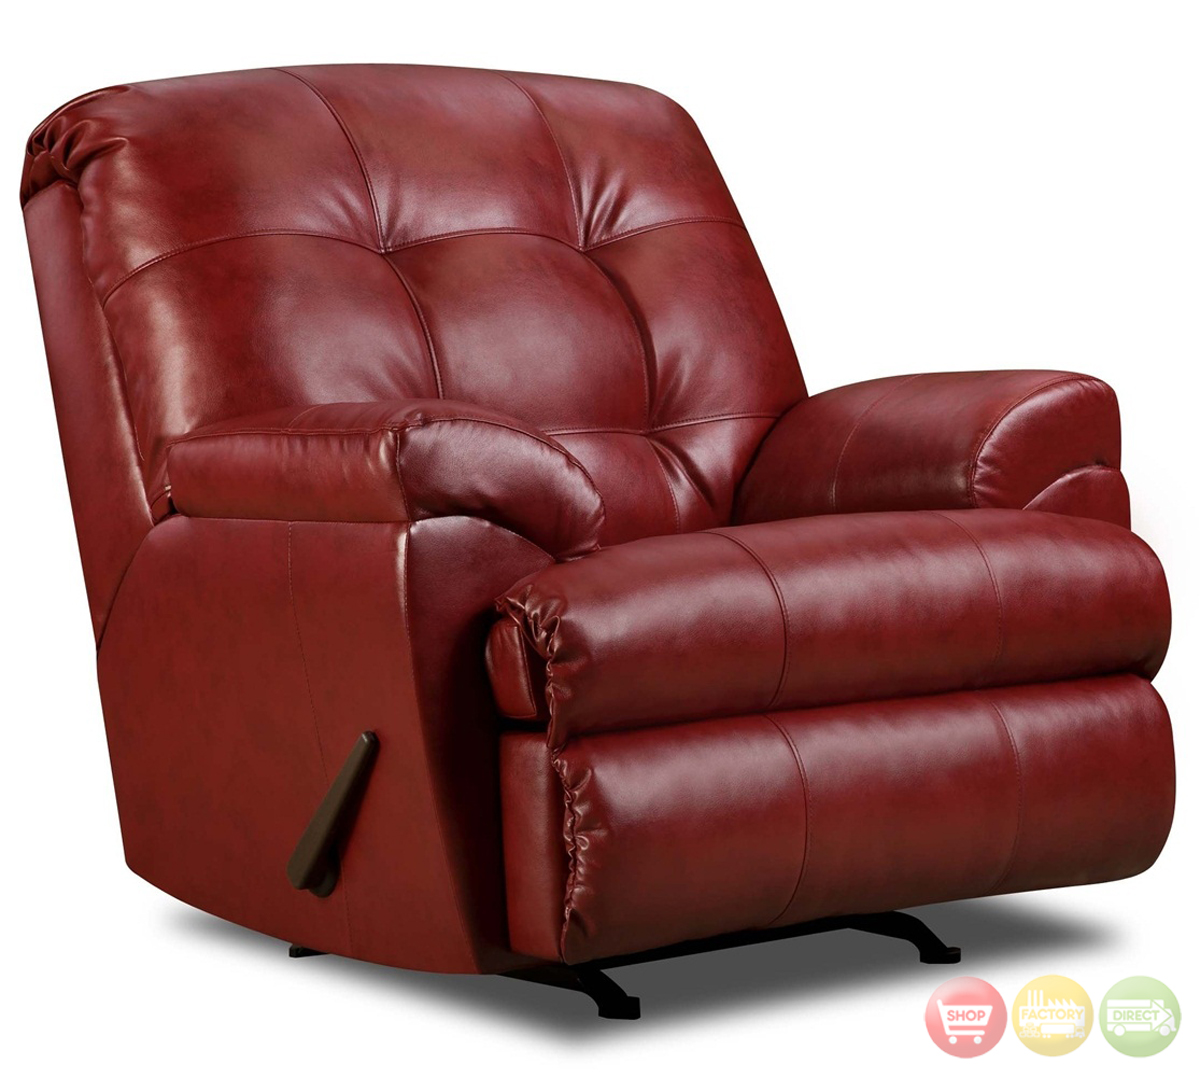 Sofa Leather Workshop: Red Bonded Leather Sofa